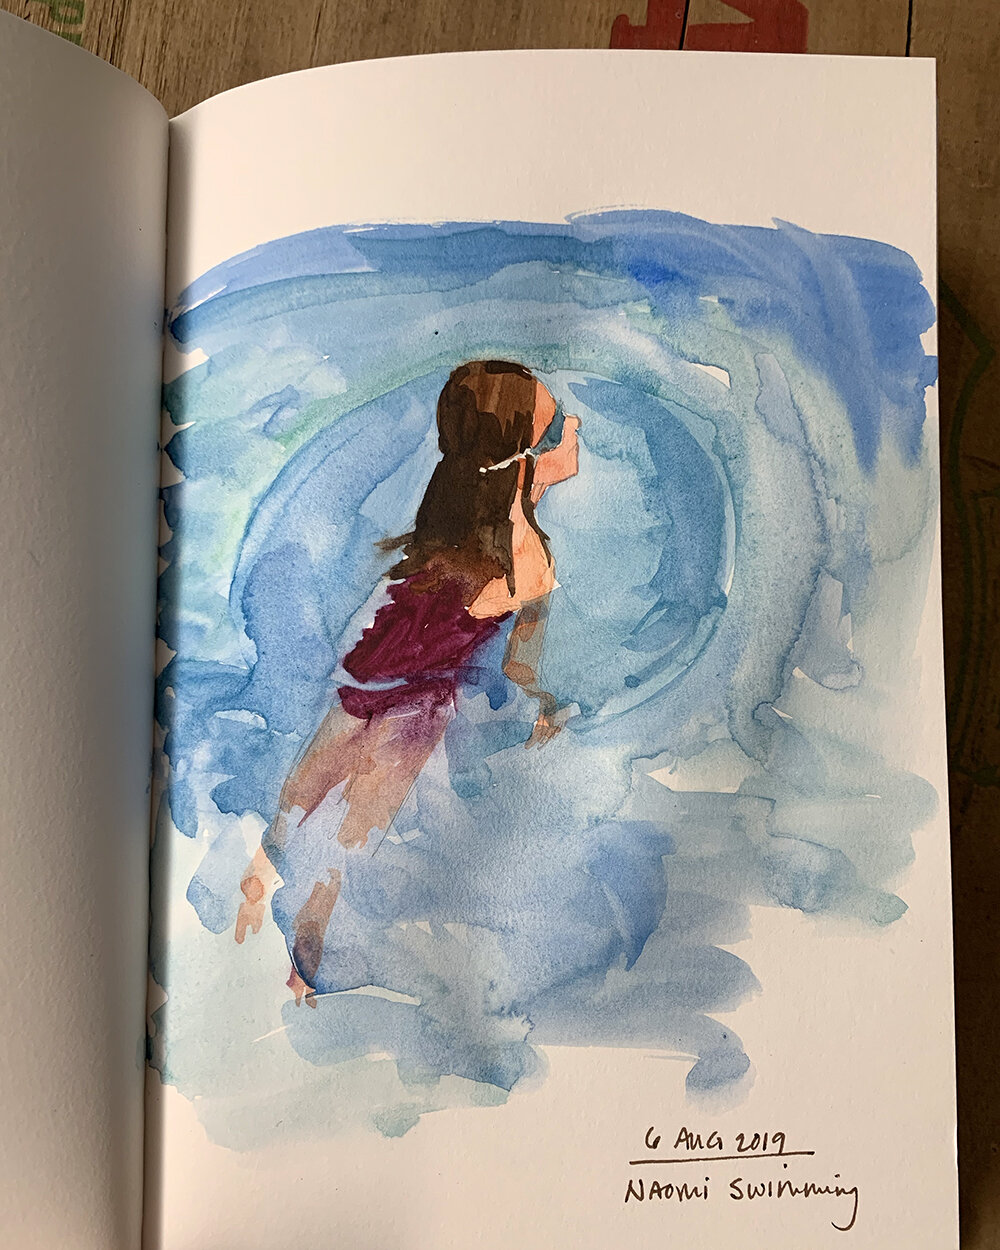 Day 218, August 6, 2019: Another watercolor sketch of Naomi in the pool. This imagery of summer never loses its appeal.